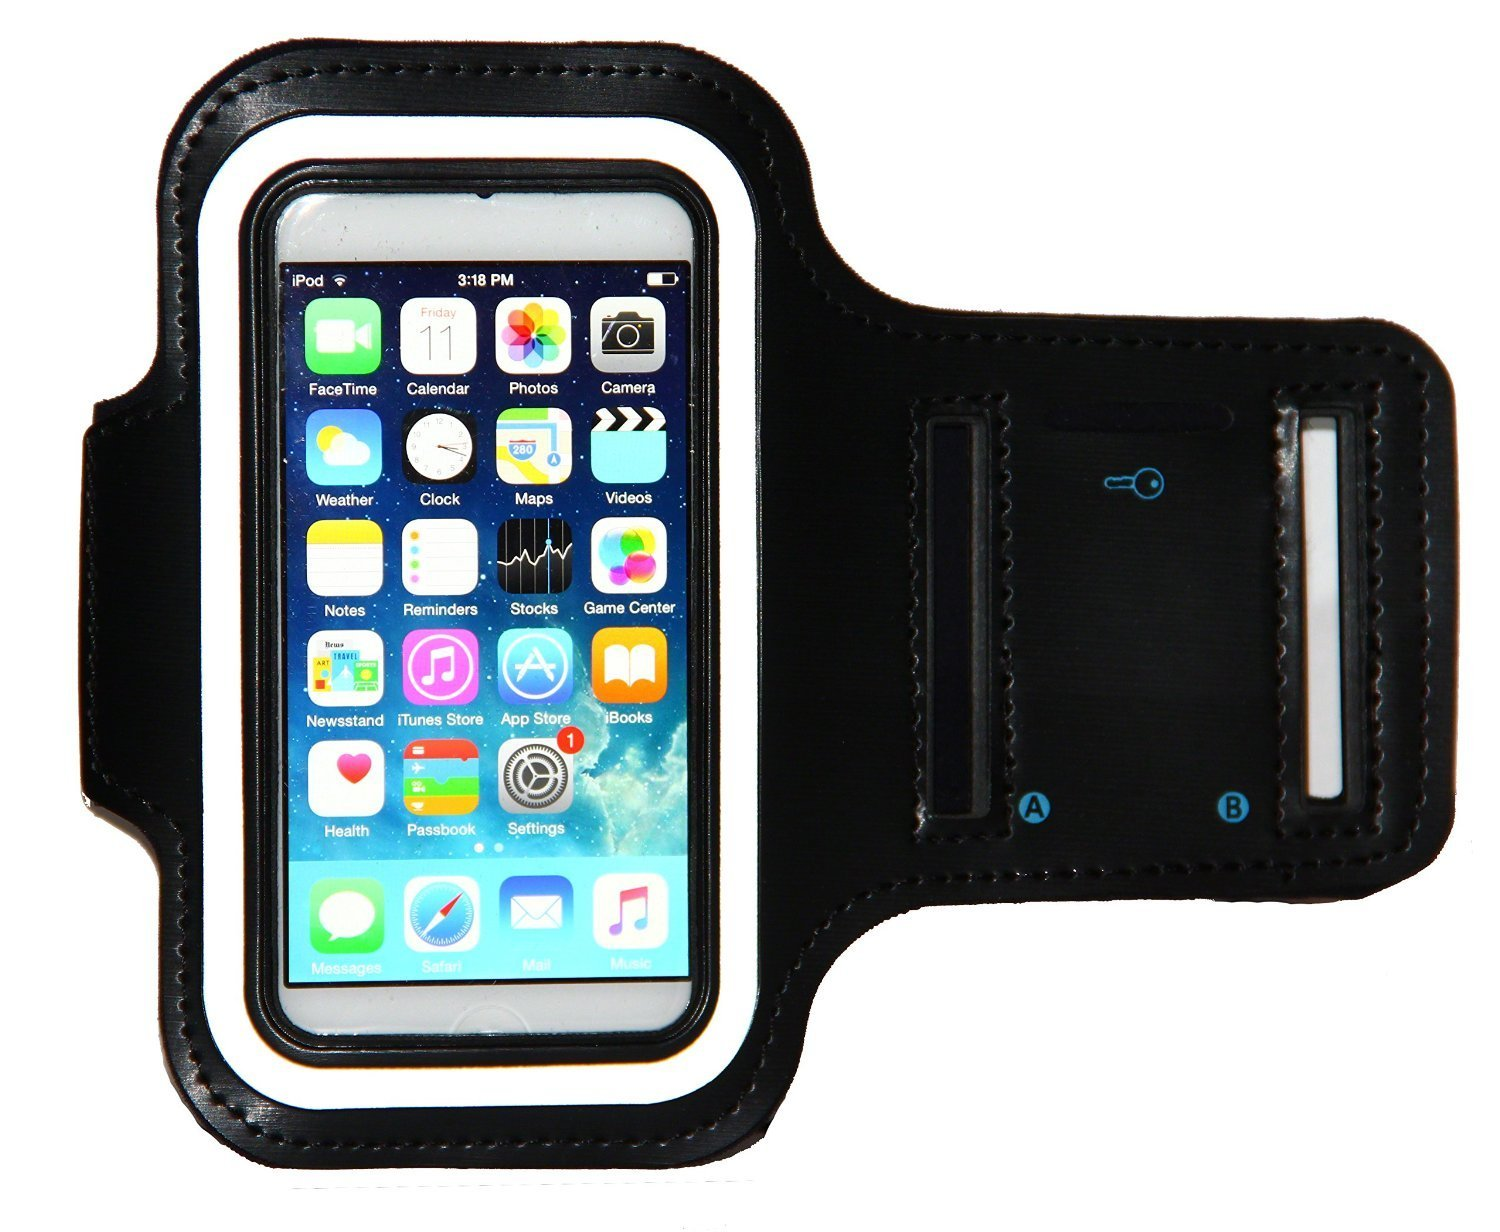 iPod Touch 6th Generation (6G) Exercise & Running MP3 Player Armband Case with Key Holder & Reflective Band (Black)